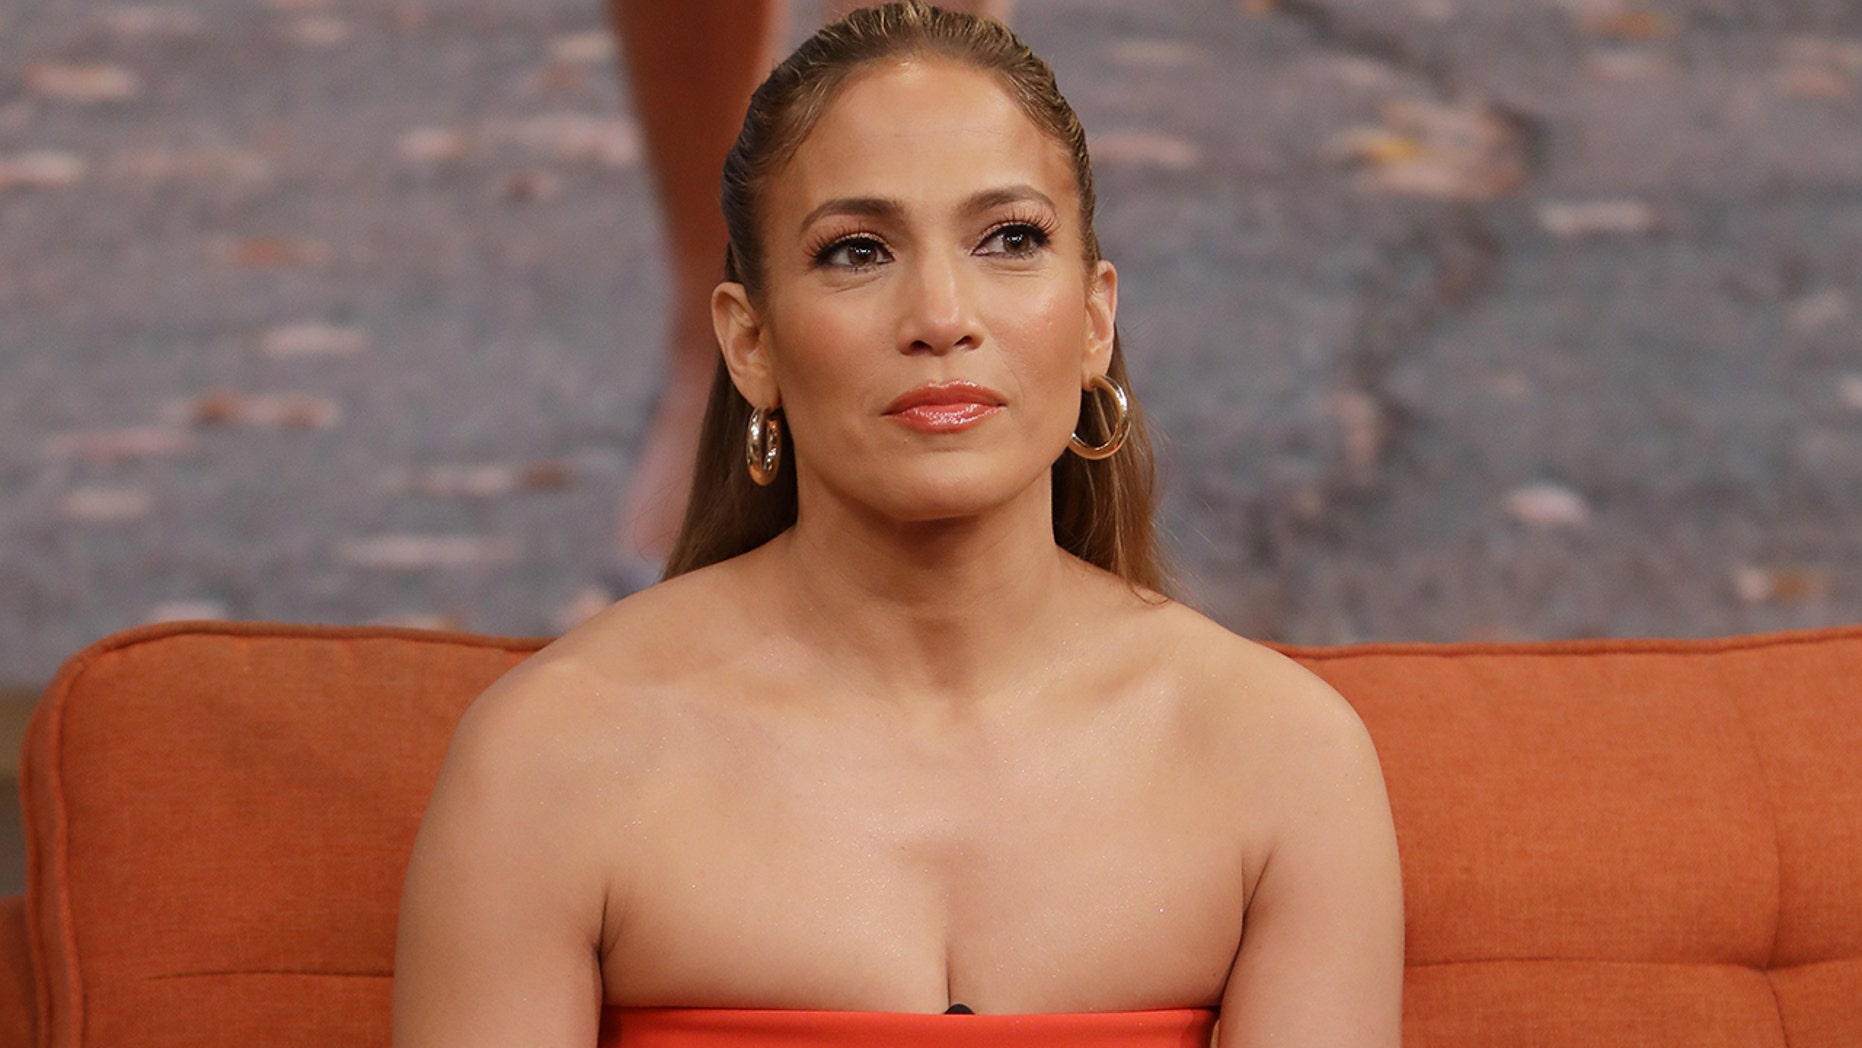 Jennifer Lopez opened up about the difficulties she faces as a woman in Hollywood.